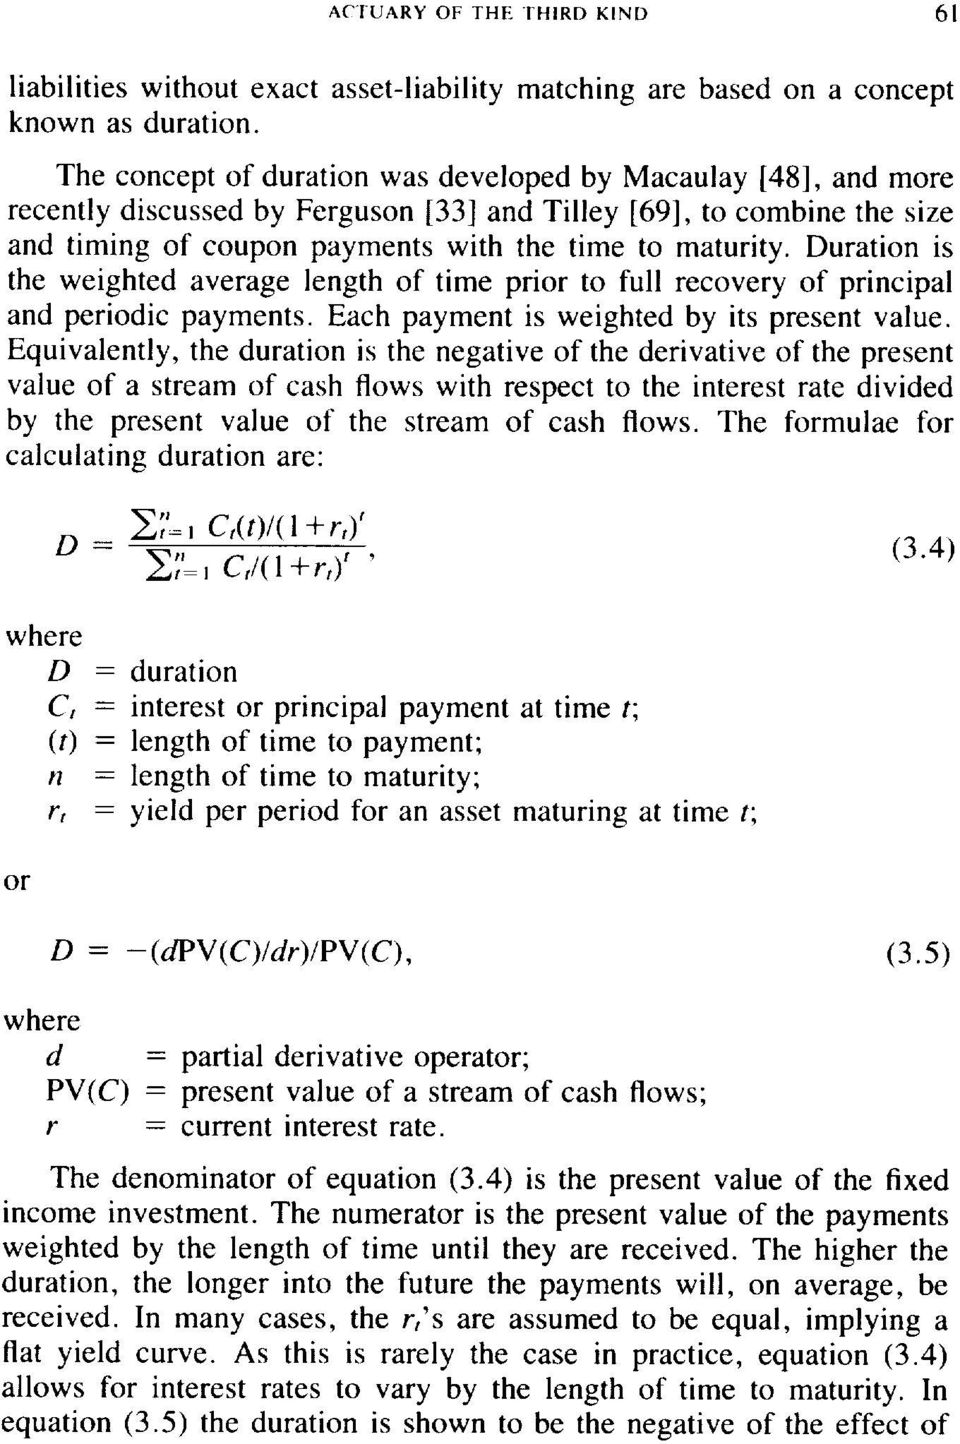 Duration is the weighted average length of time prior to full recovery of principal and periodic payments. Each payment is weighted by its present value.